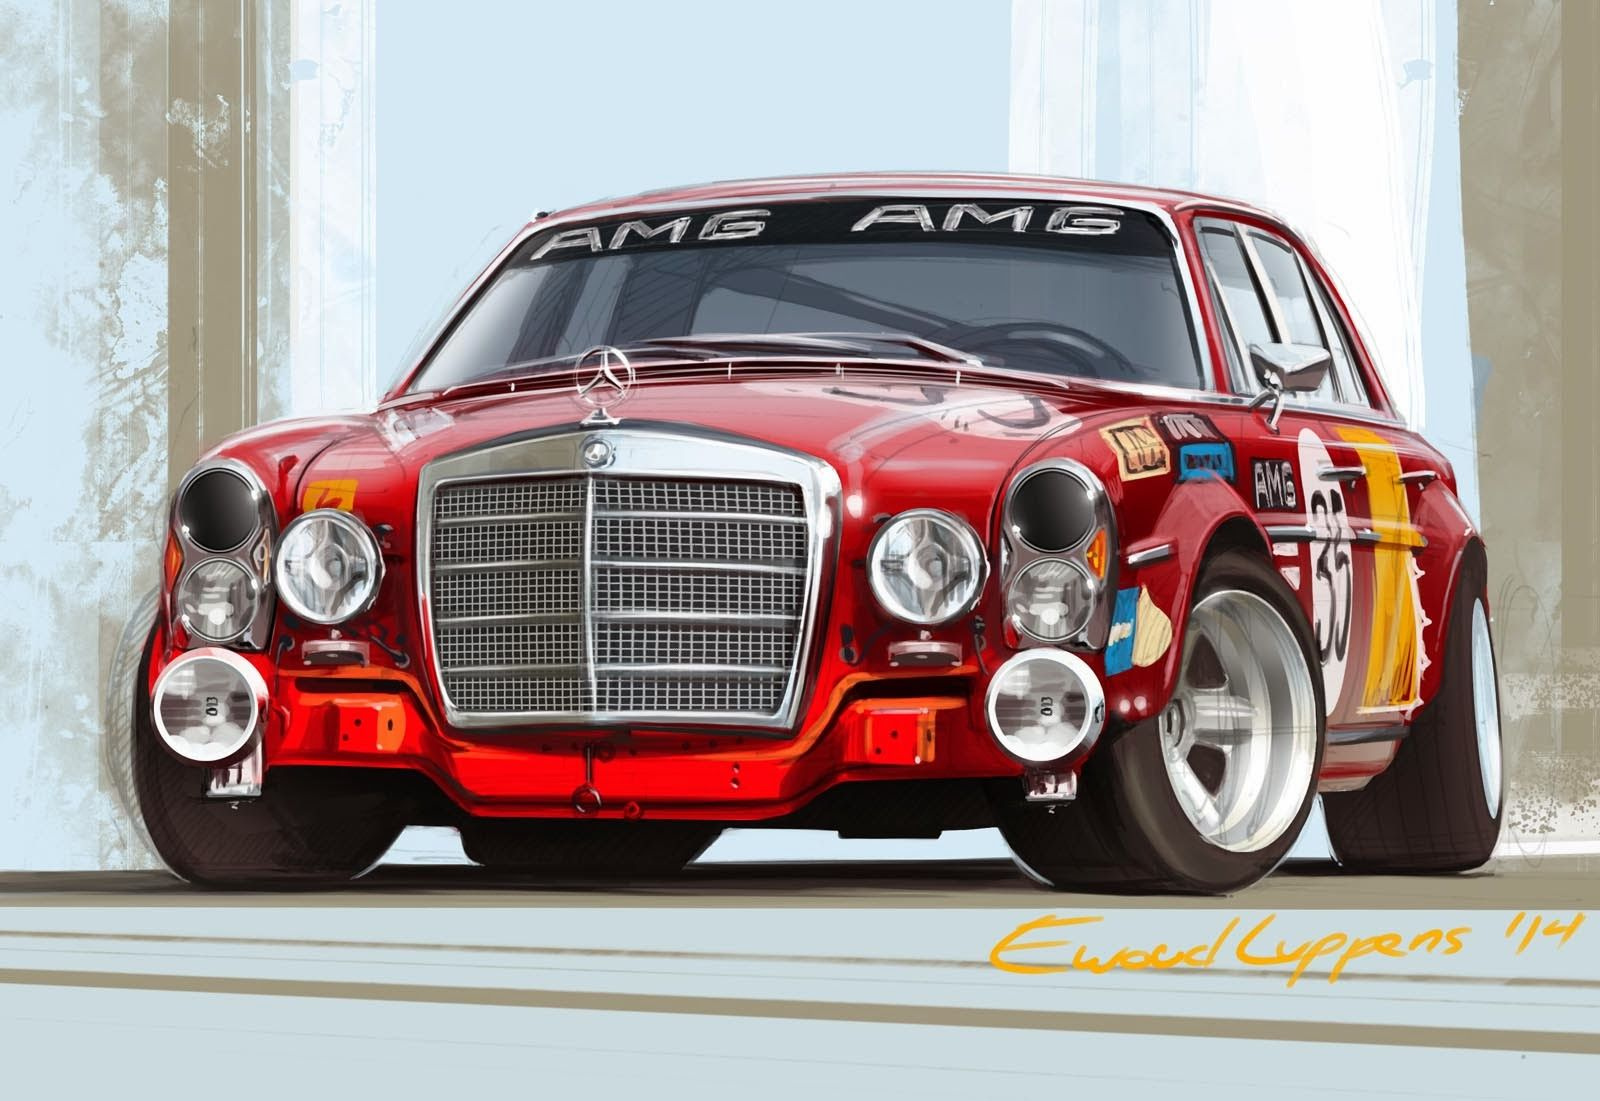 Mercedes Benz 300 SEL AMG Race Car Art by Ewoud Luppens